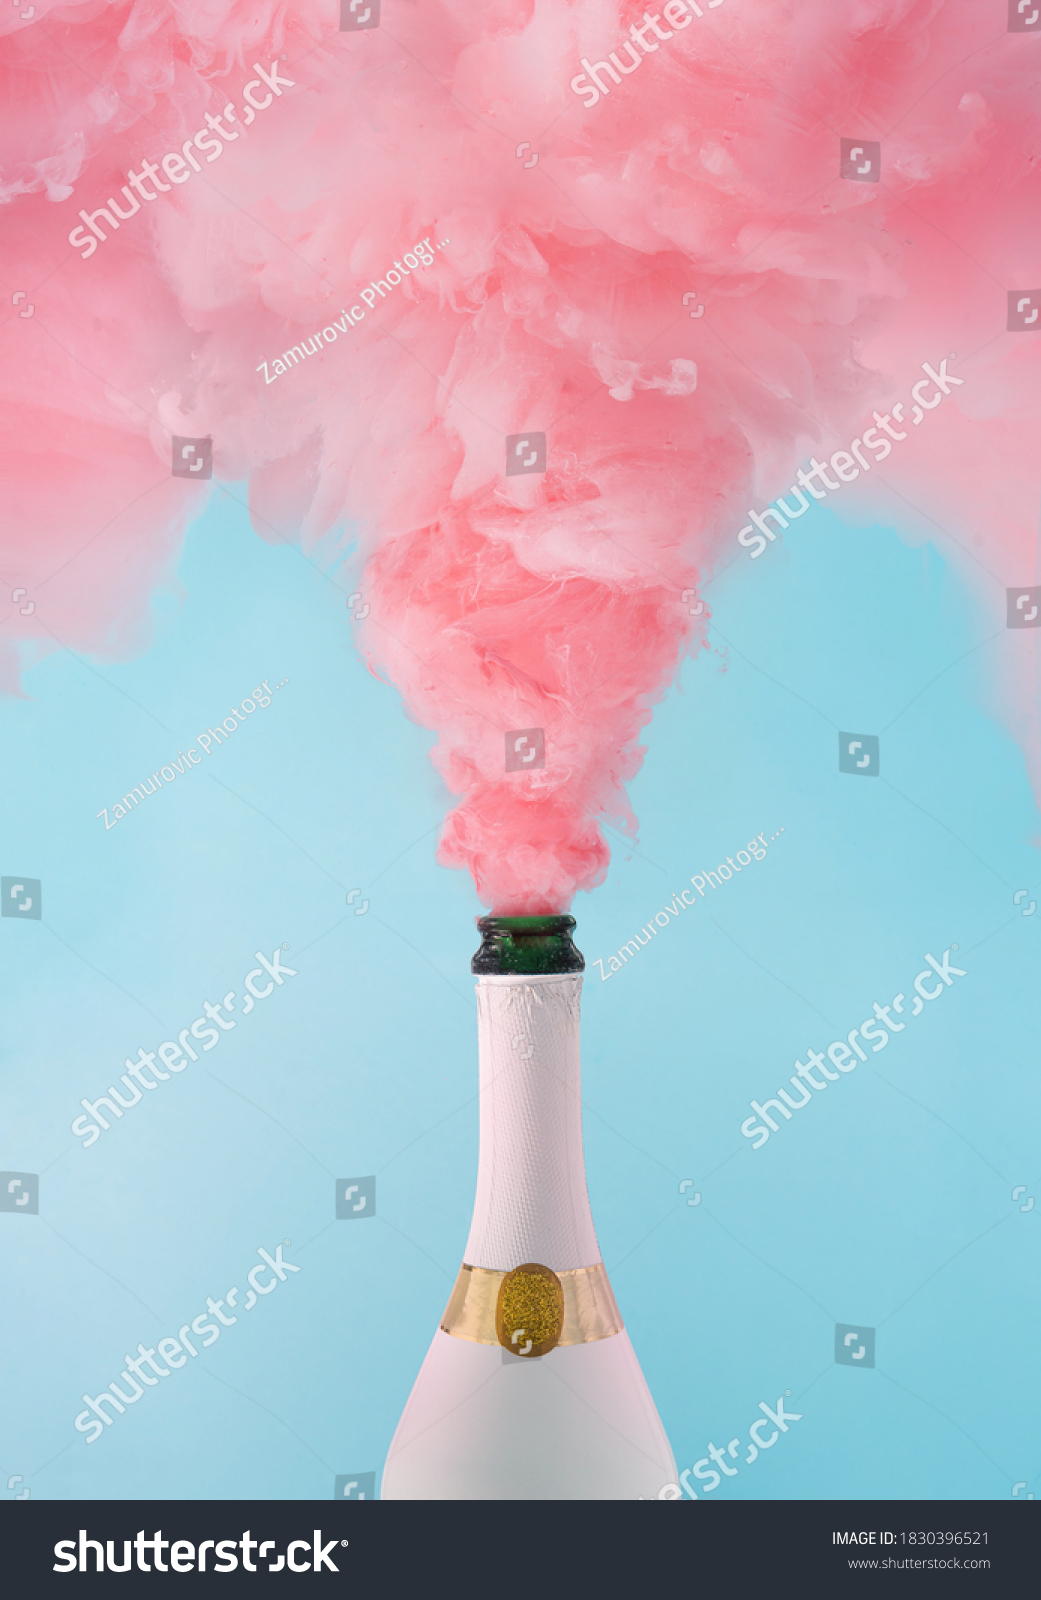 Pastel pink champagne explosion on blue background. Minimal party concept. New Year and Christmas celebration idea. #1830396521